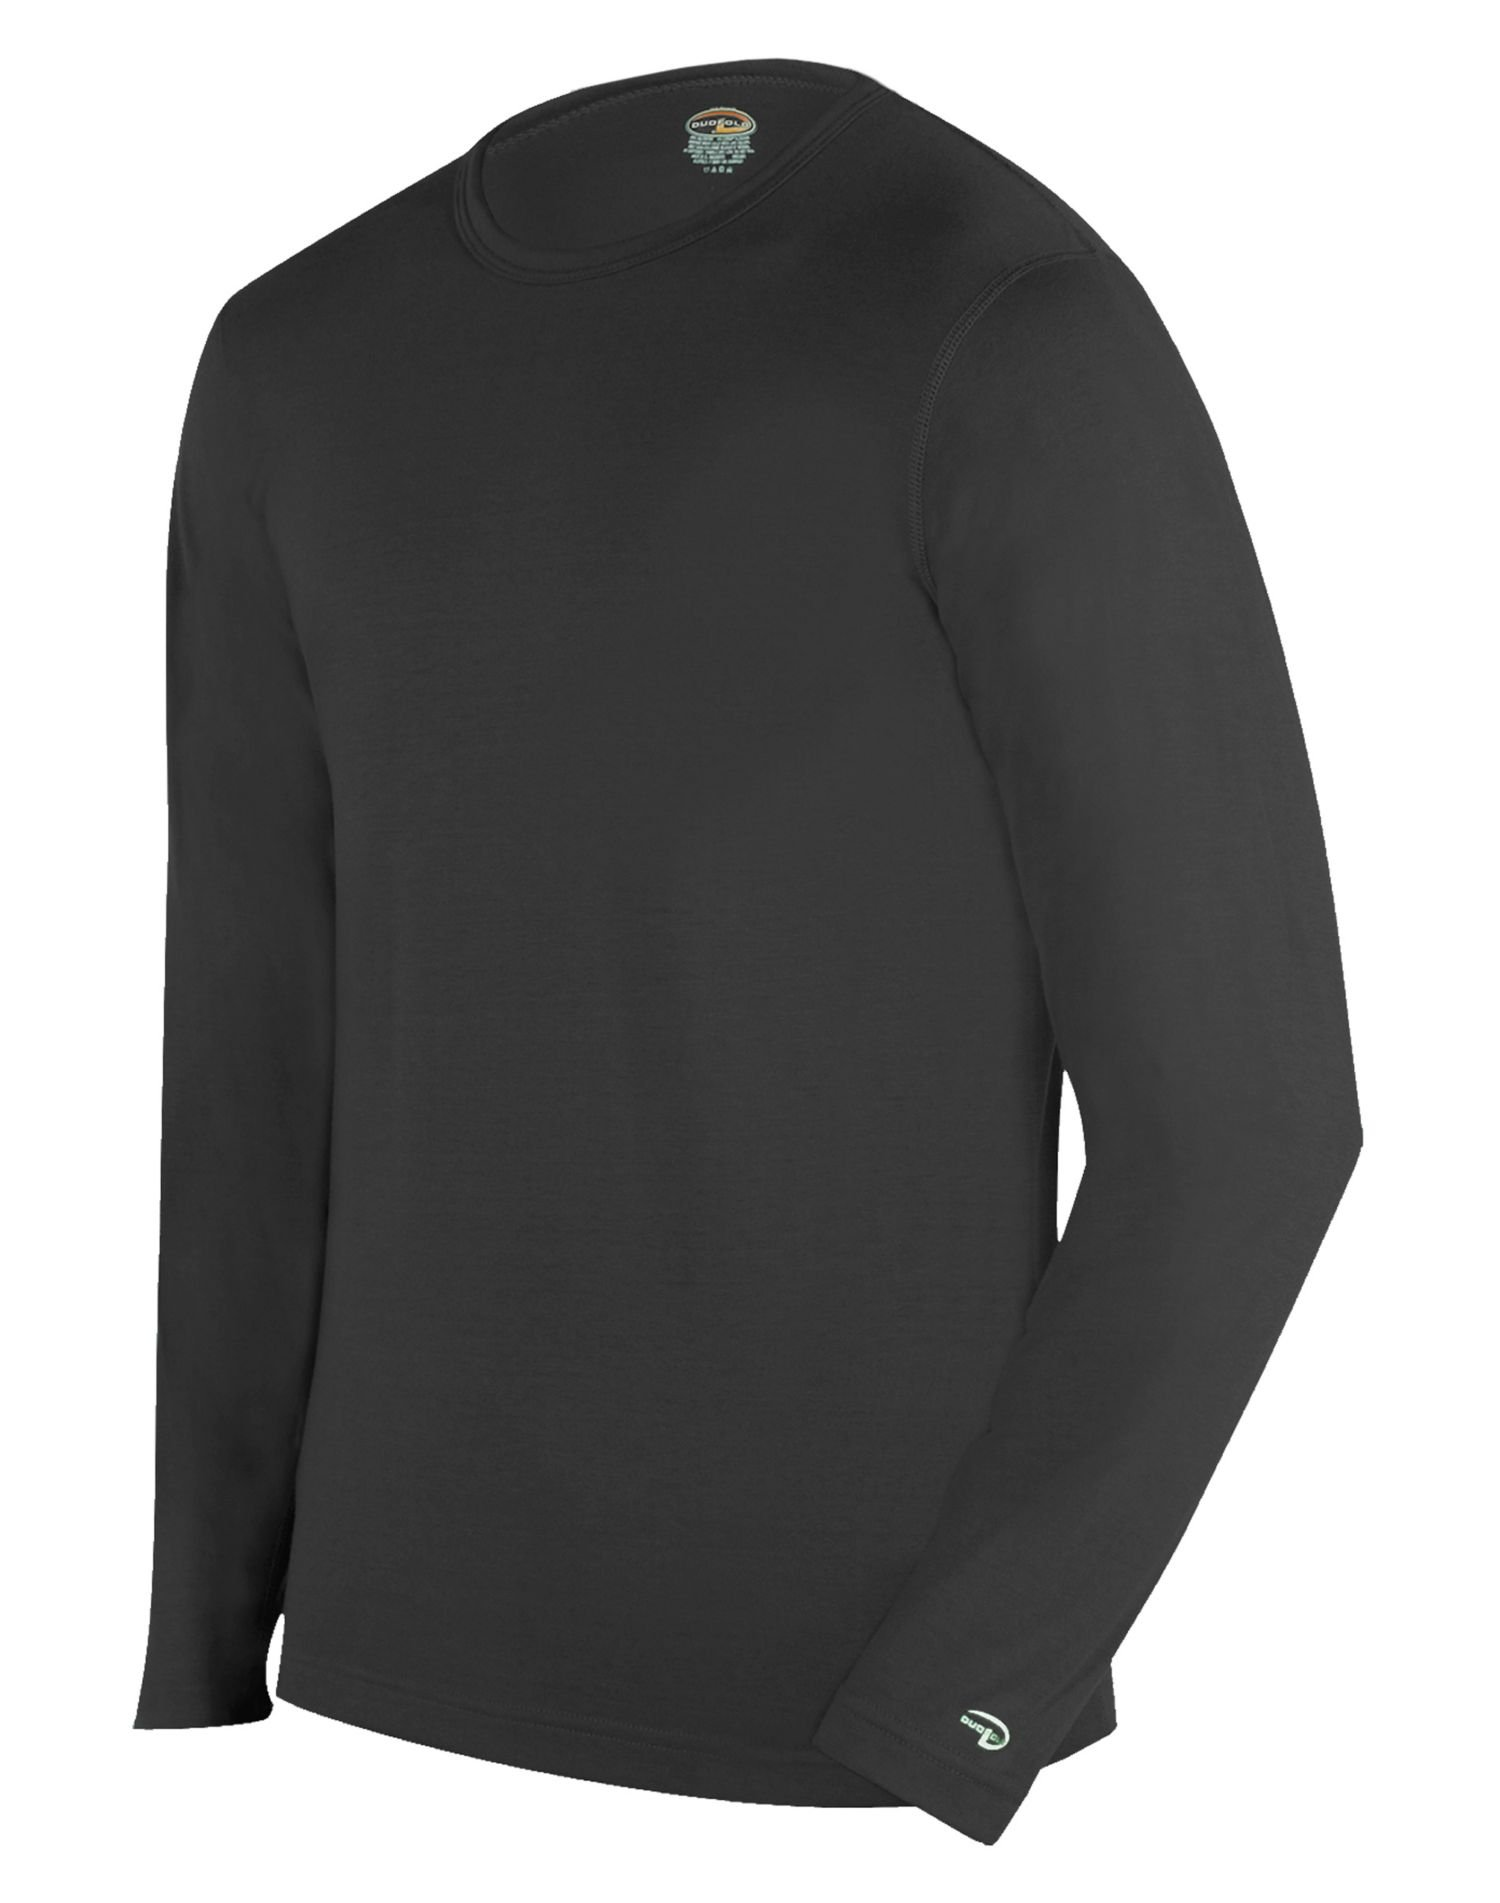 Duofold Men's Expedition Weight Two-Layer Thermal Tagless Crew, Black, X-Large by Duofold